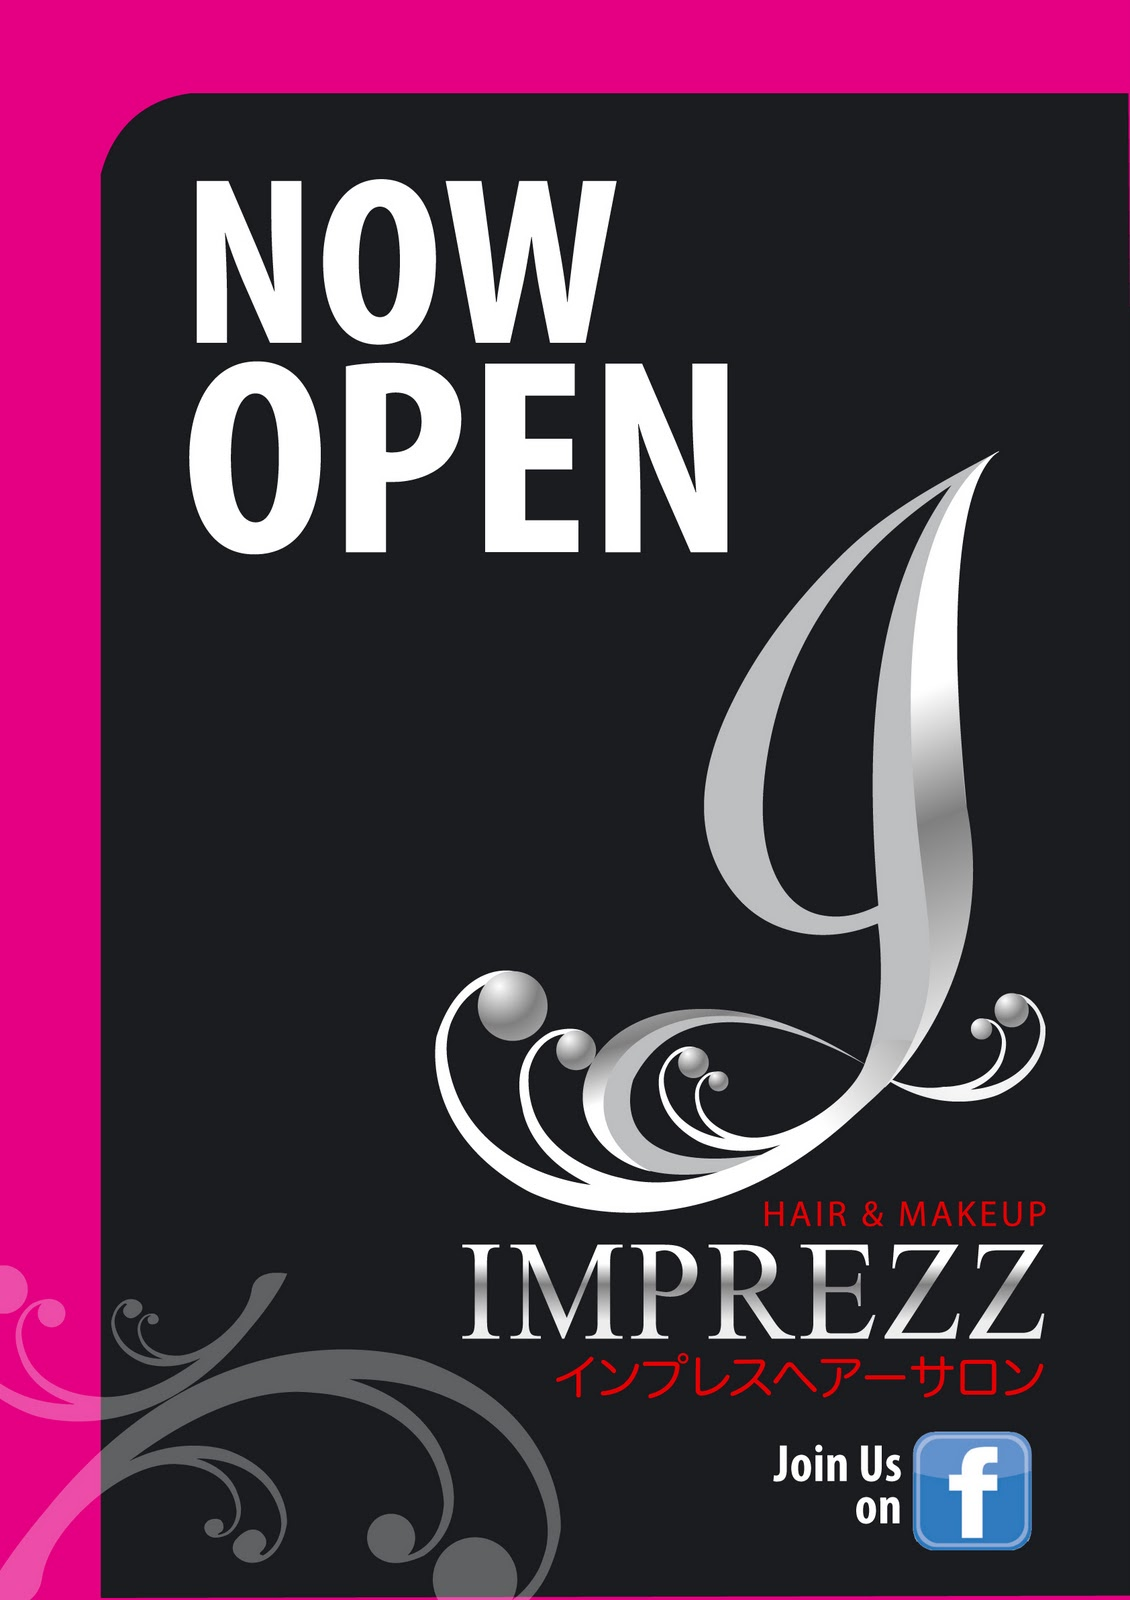 Imprezz Hair Makeup And Beauty Imprezz Hair And Beauty